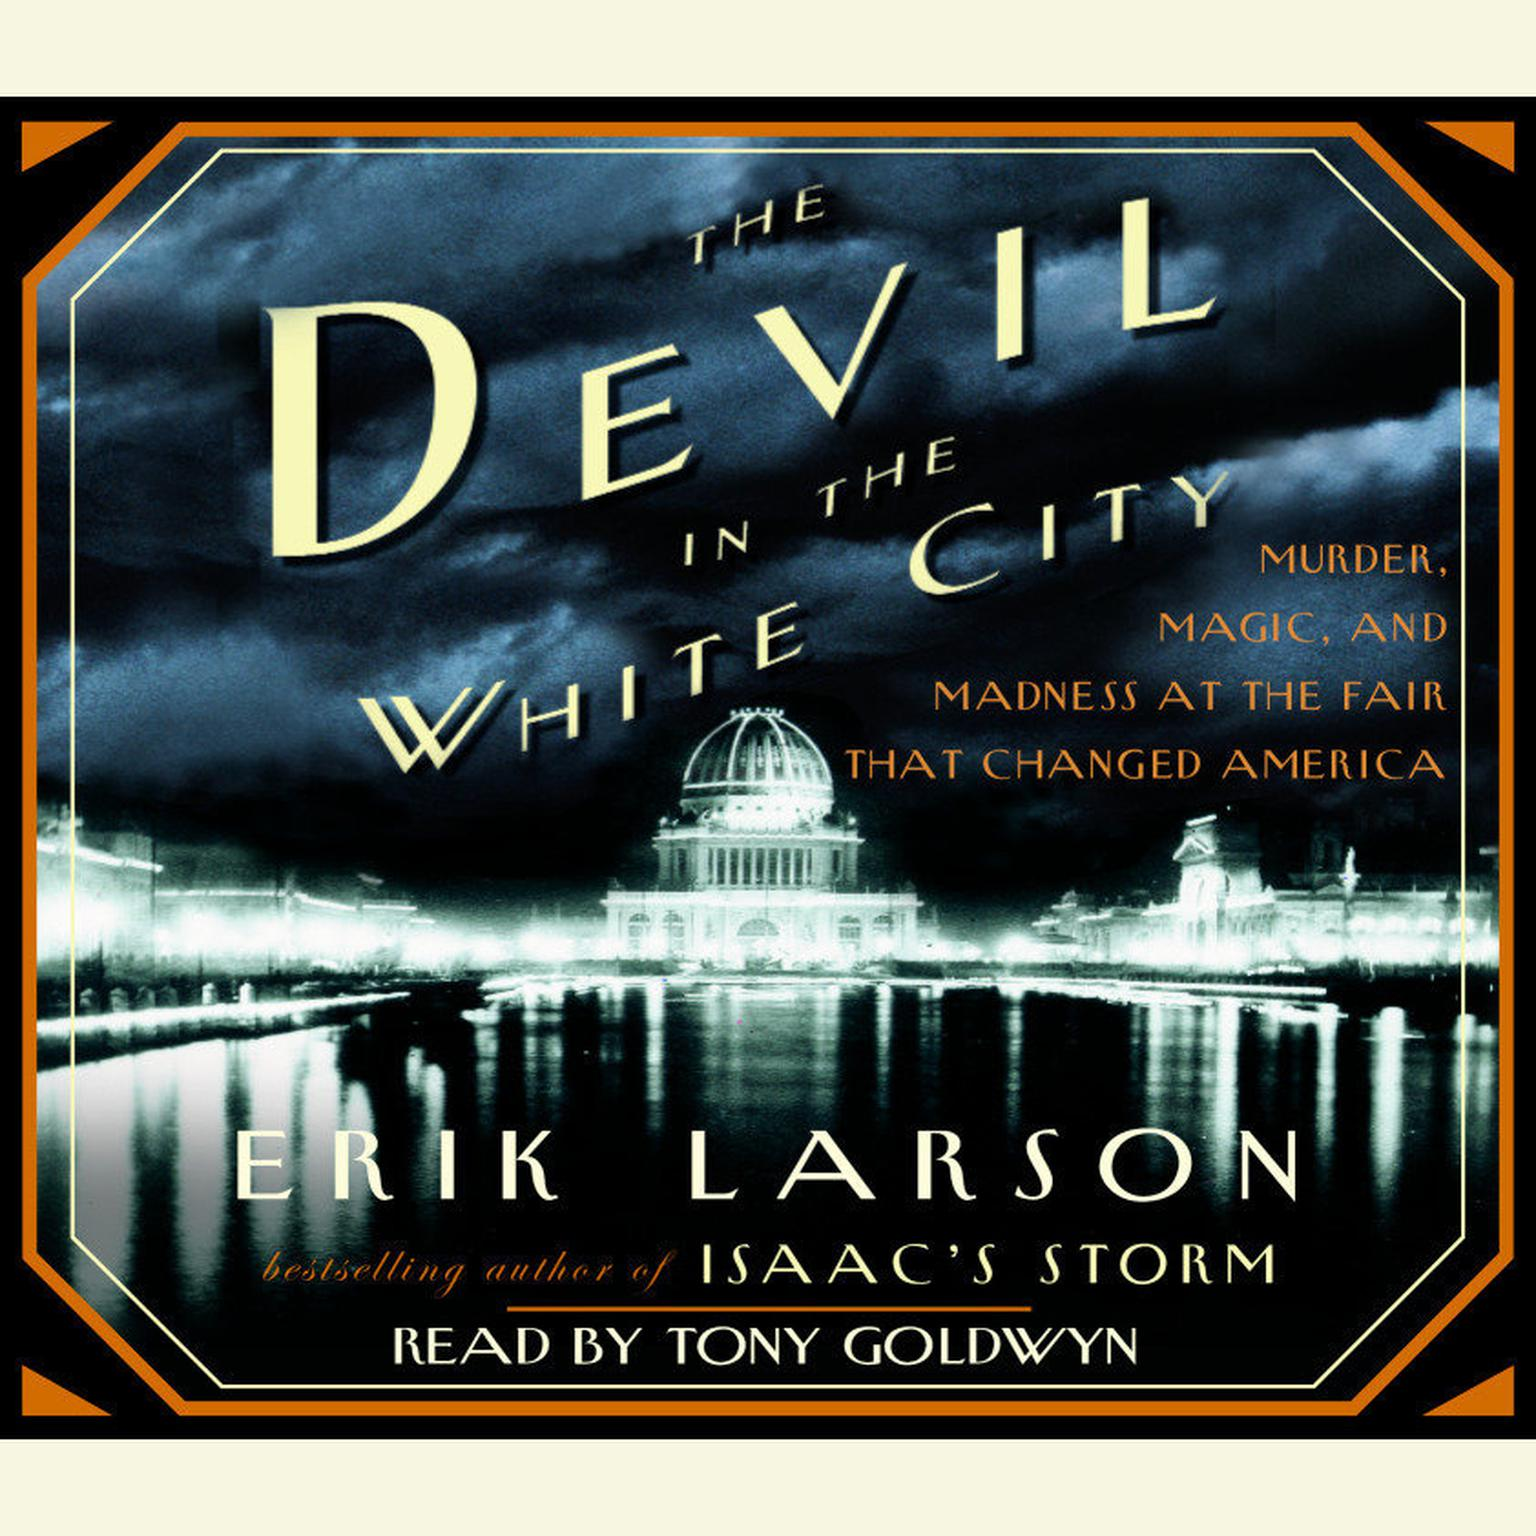 Printable the devil in the white city murder magic and madness at